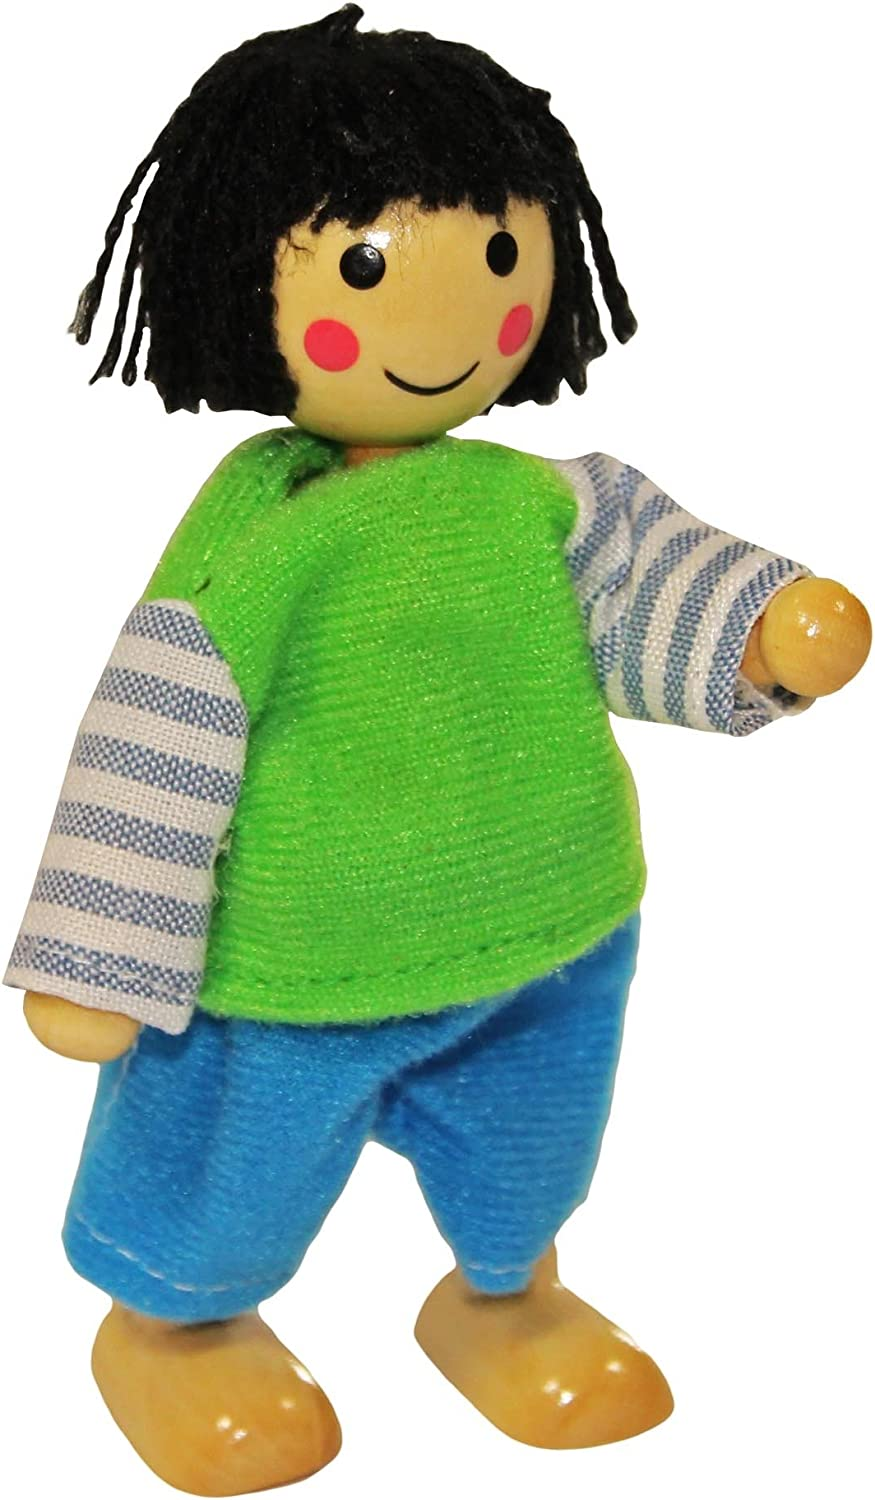 Set Of 4 Dolls Including Clothes For Changing Wooden Flexible Puppets Freda Dolls Family